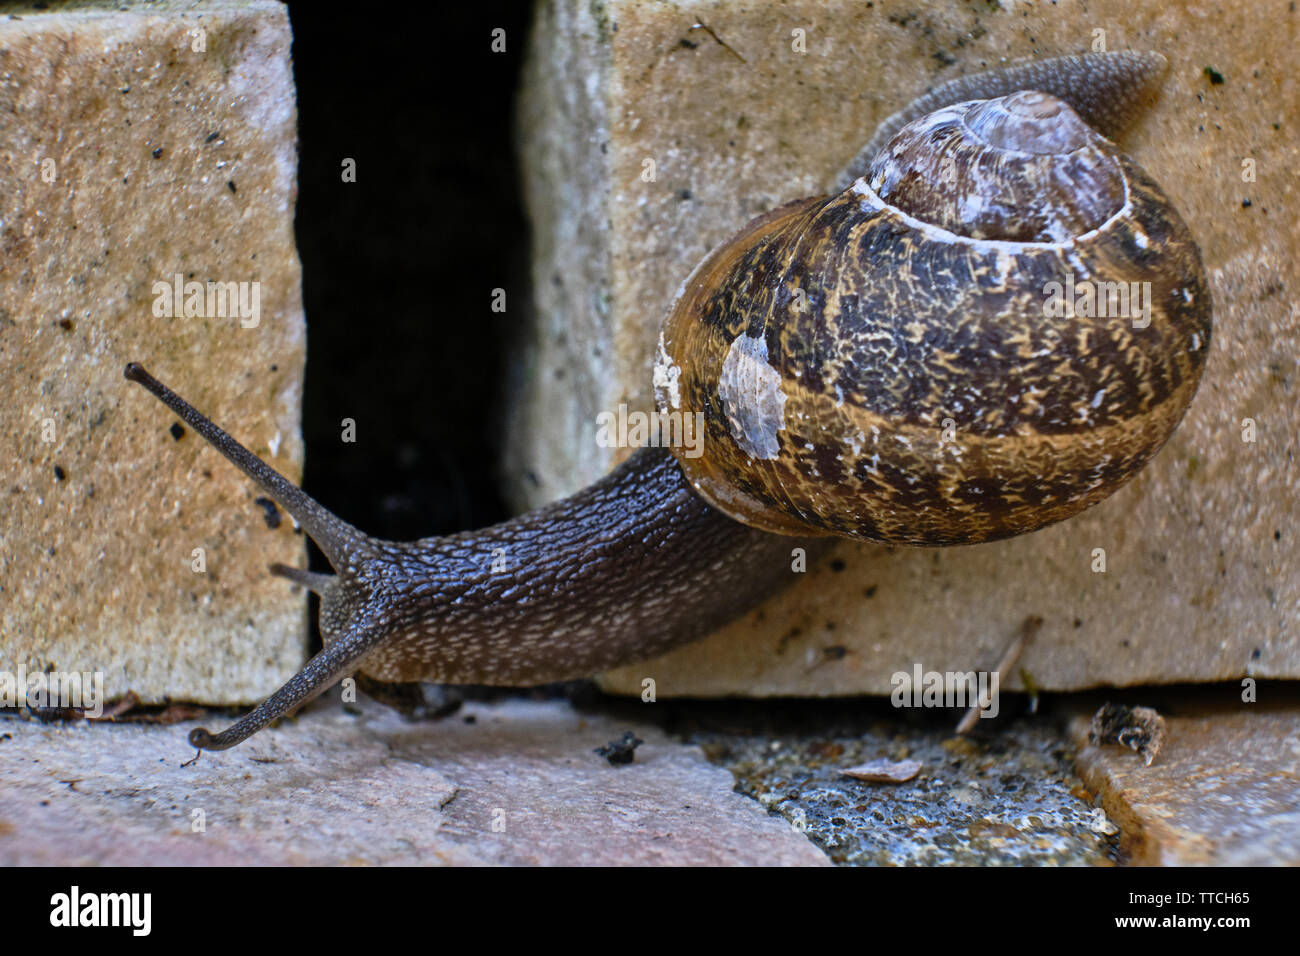 Close up photo of a common garden snail crawling on a stone brick Stock Photo